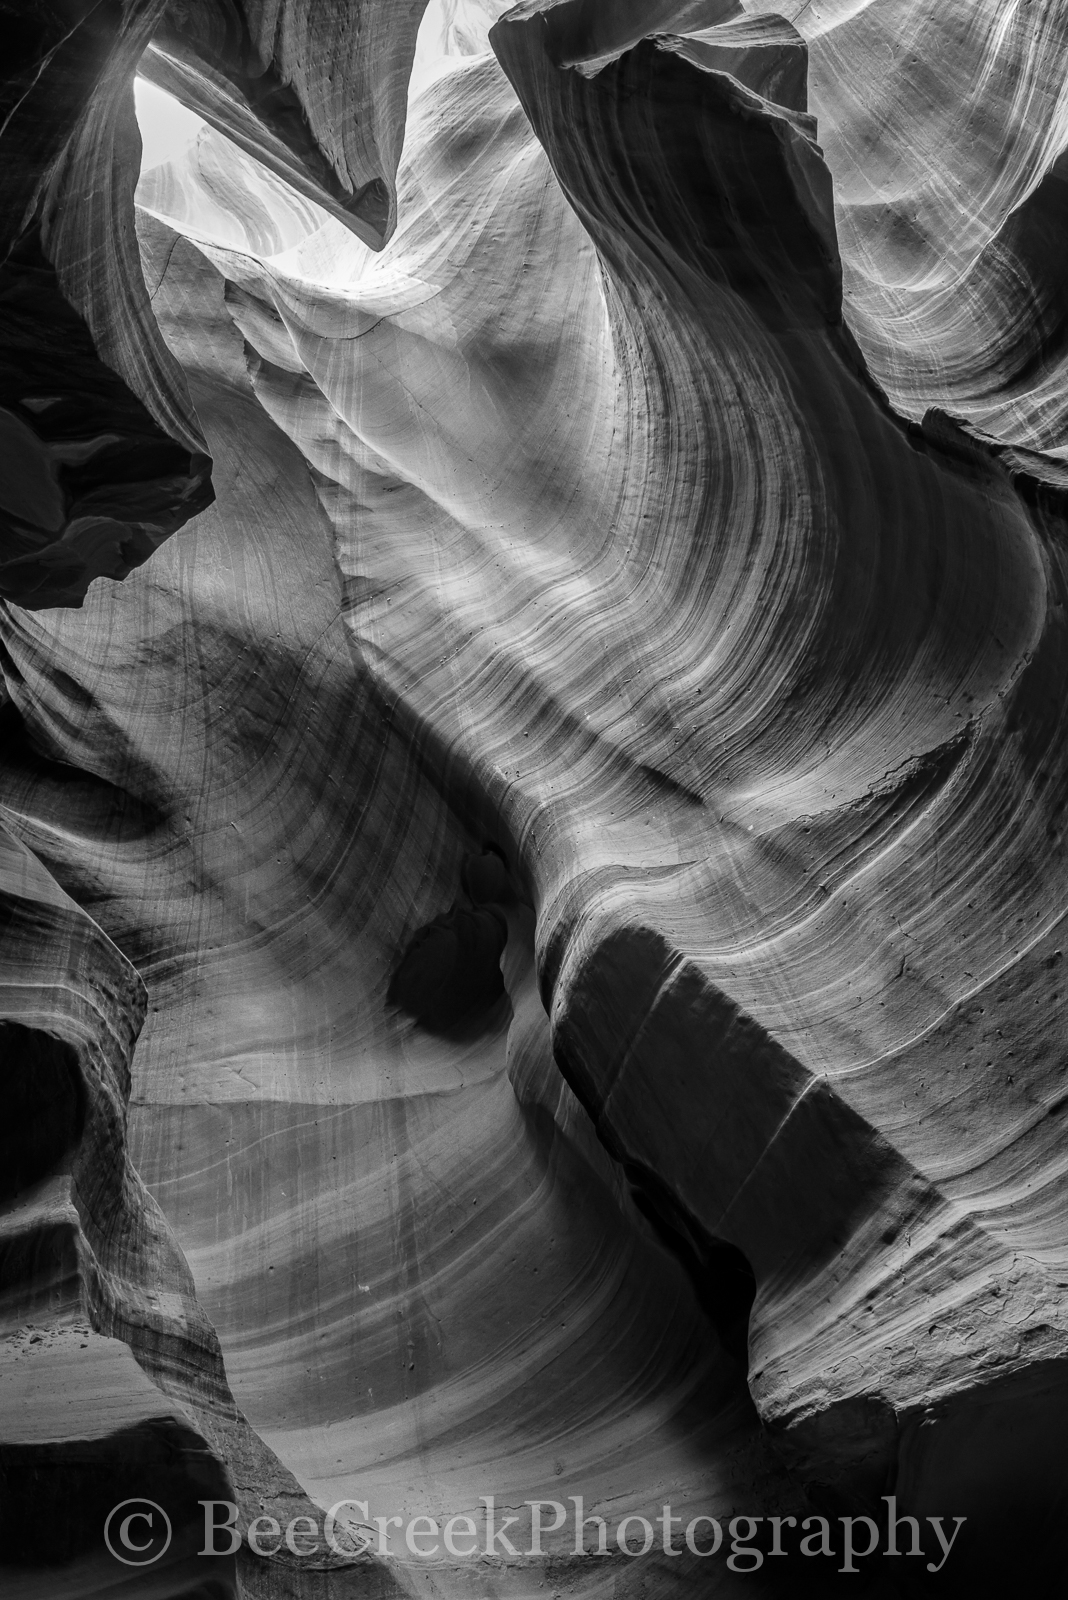 AZ, Arizona, Page AZ, Peter lik, antelope canyon, best sellers, black and white, desert southwest, image of antelope canyon, images of arizona, images of sloth canyons, most popular, najavo, photos, p, photo